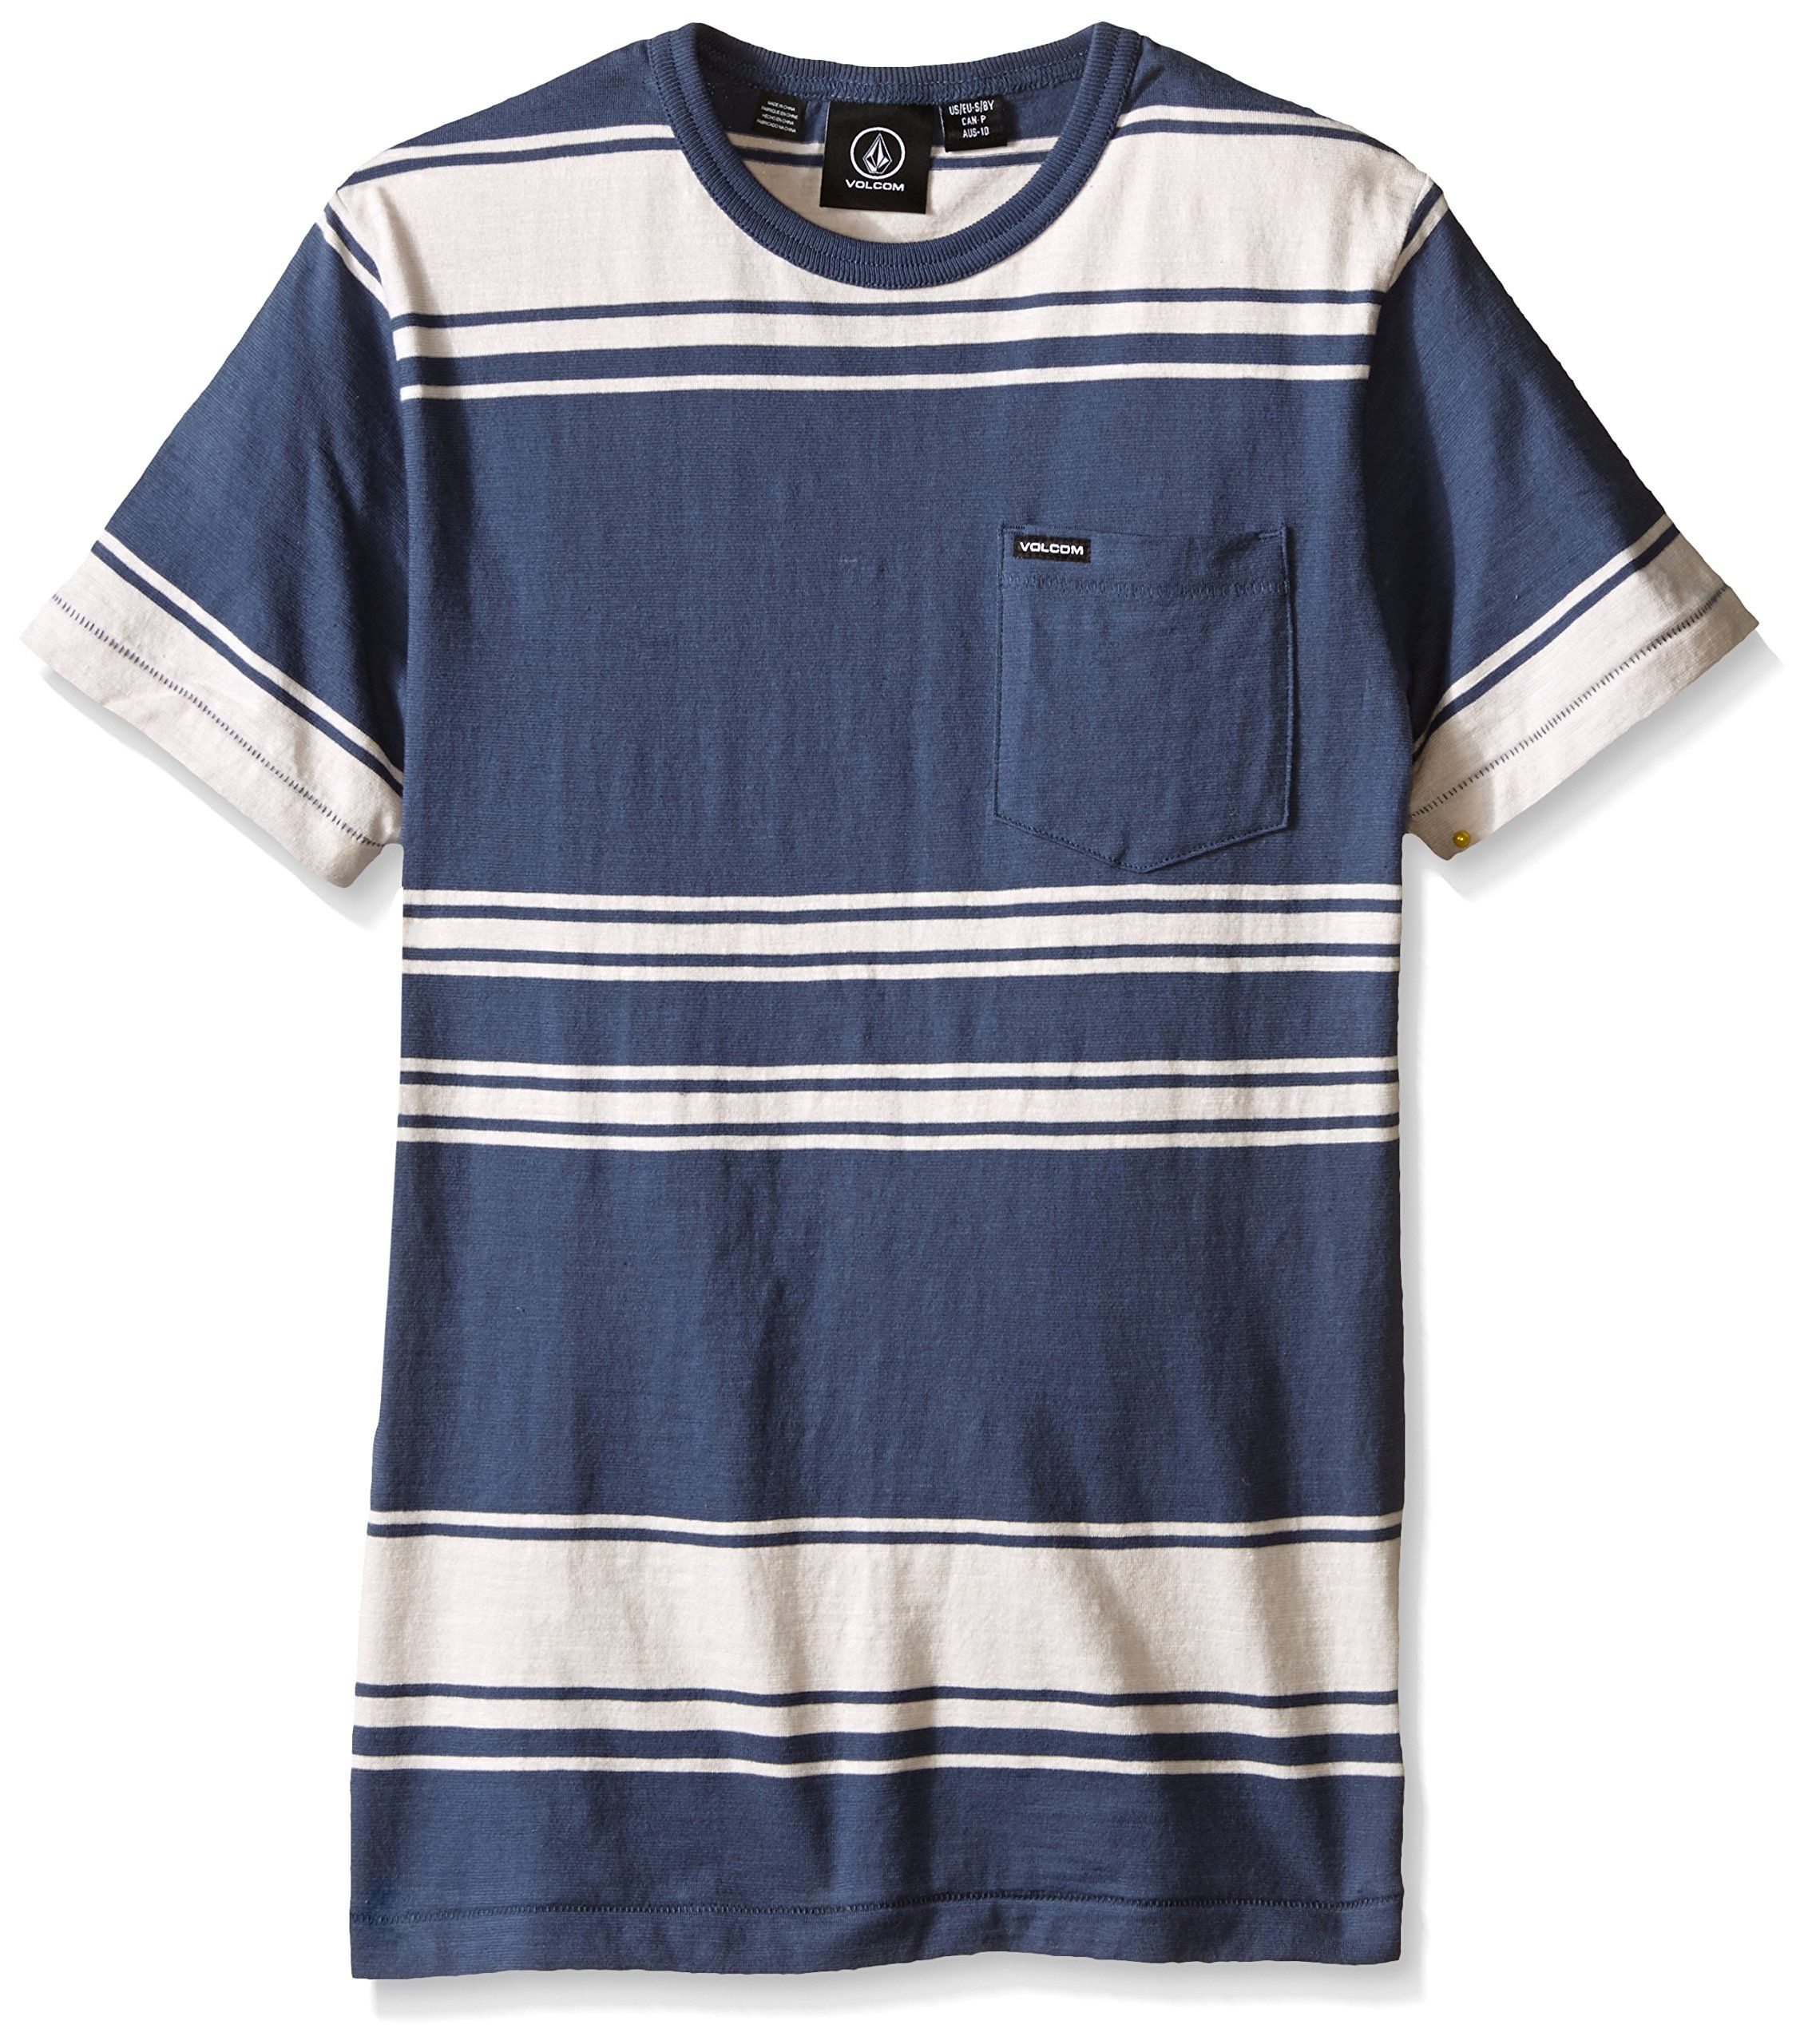 Volcom Big Boys' Hayward Stripe Crew Shirt, Grey/Blue, Small. Slim fit crew neck t-shirt. All over stripe design. Patch pocket at chest. Small exterior woven label.